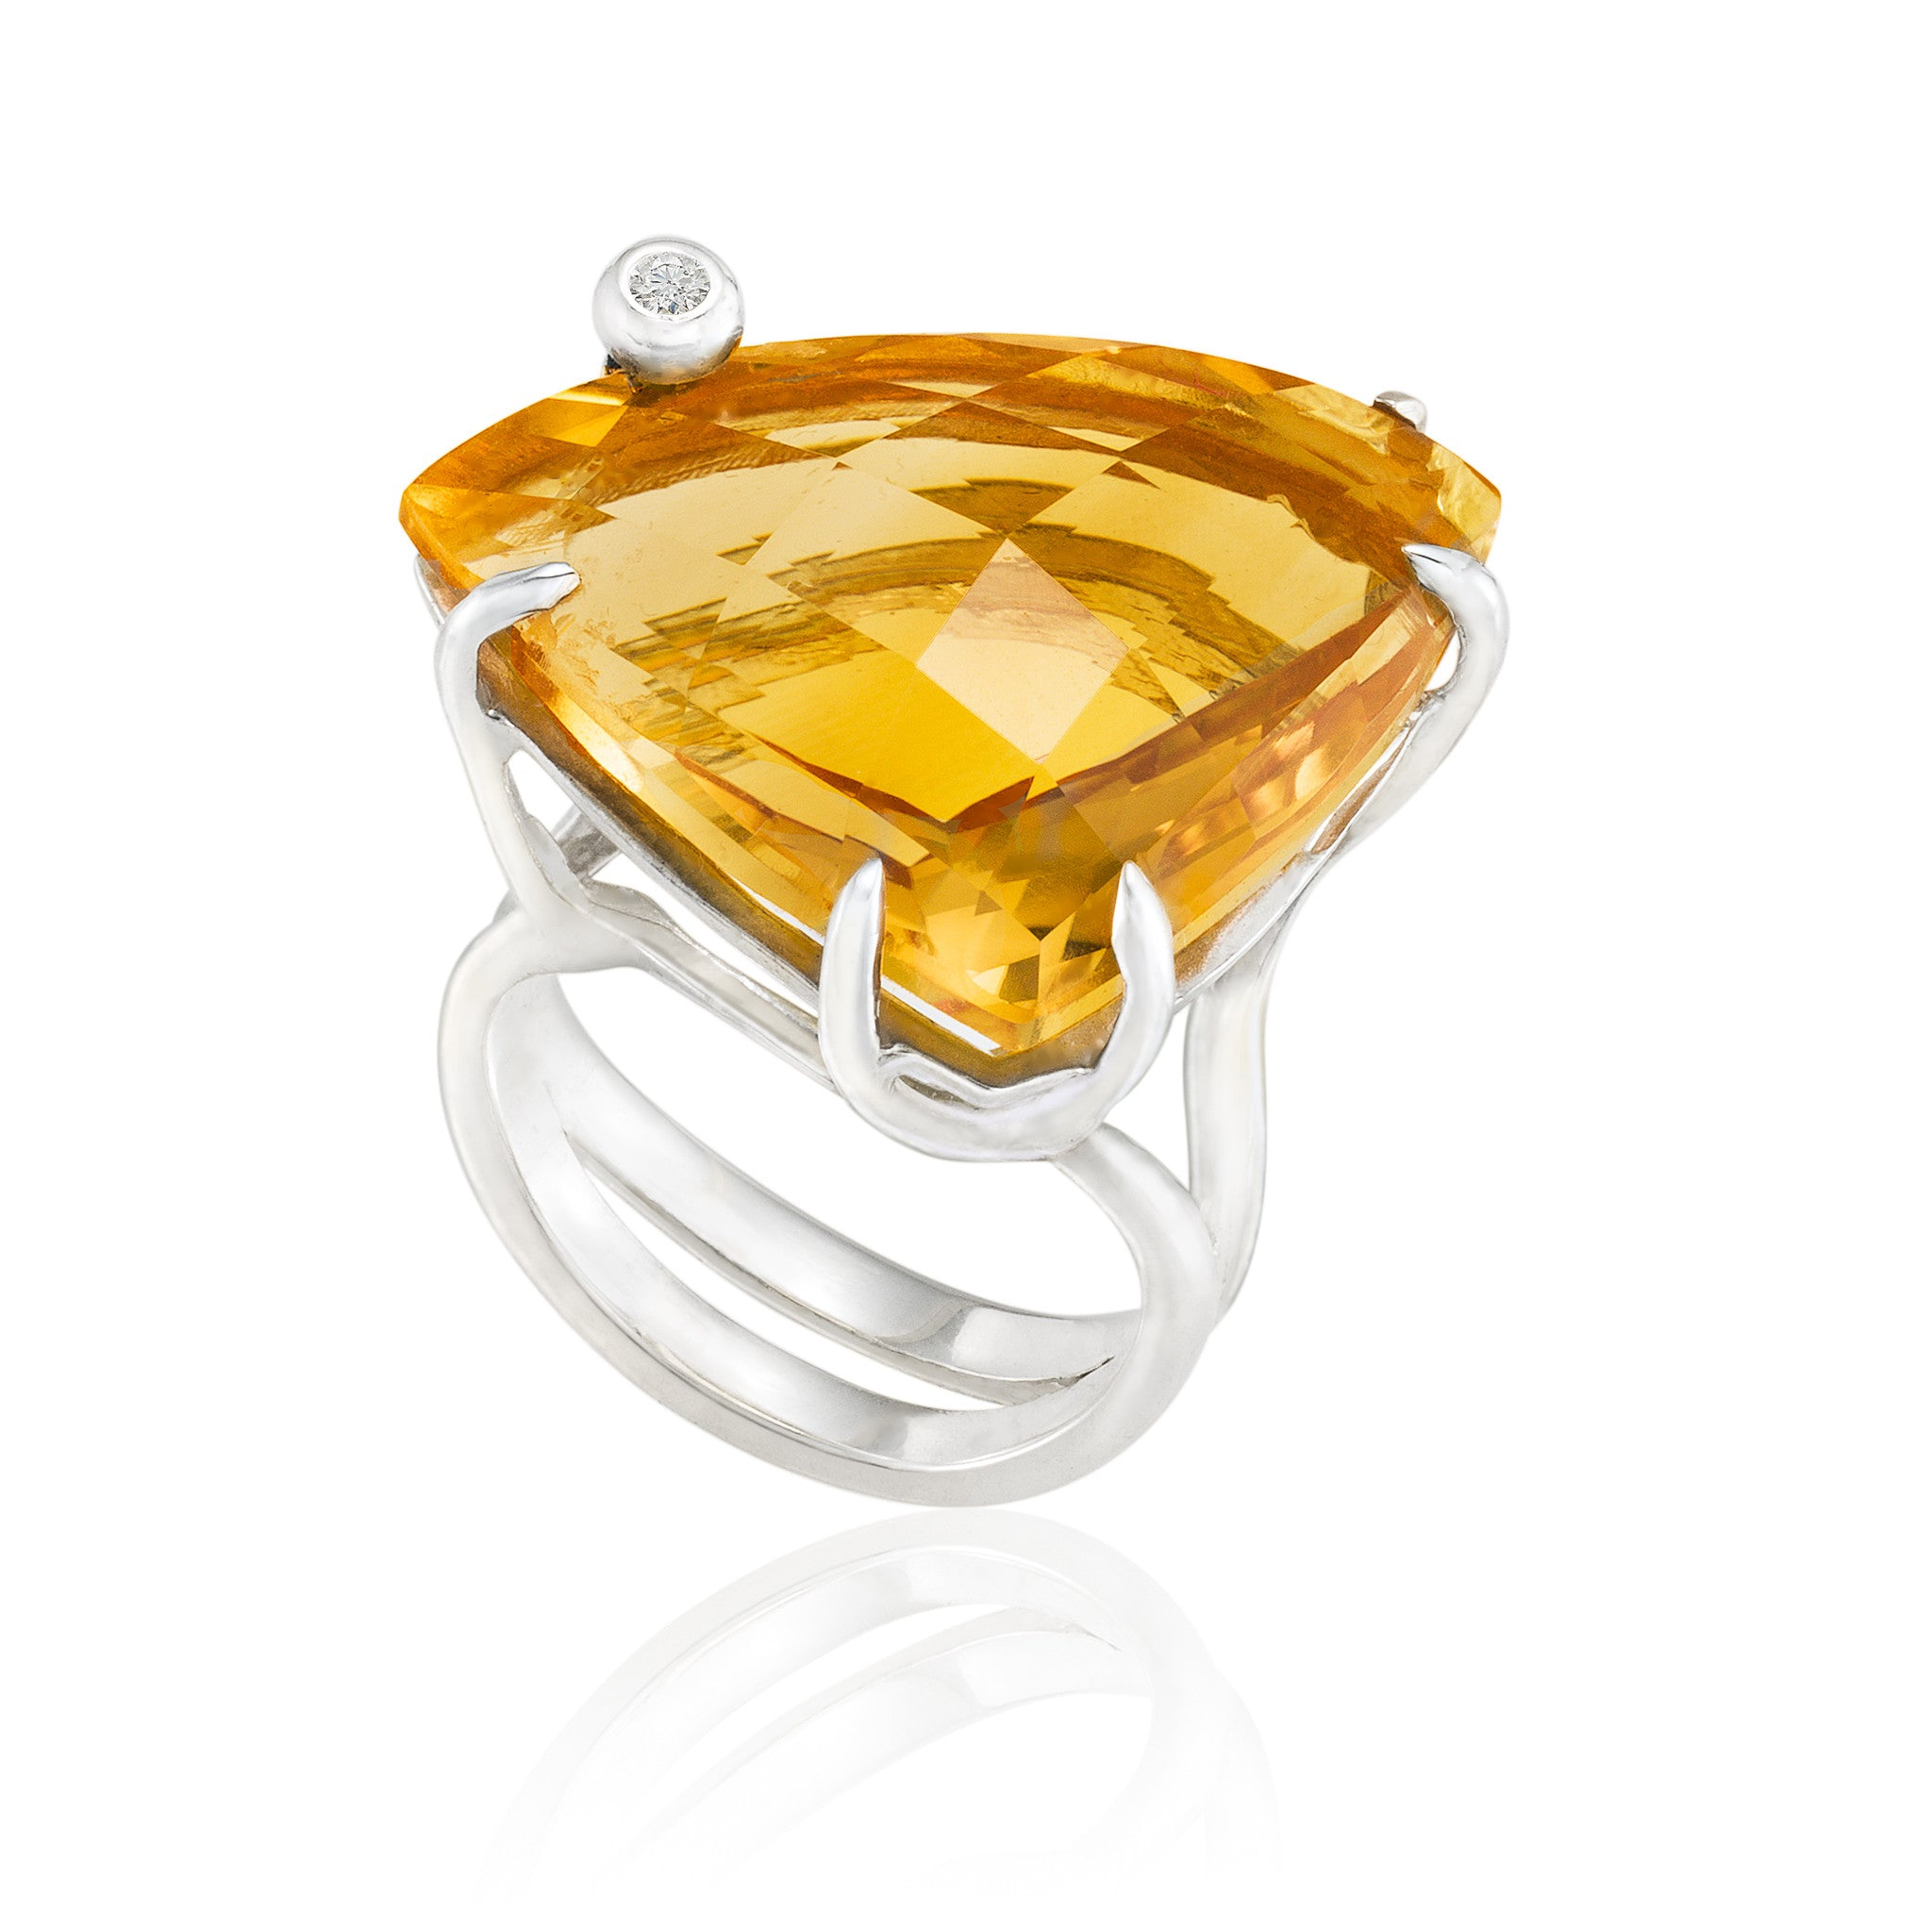 p ivvy rings stone engagement products gimp crystal big ring amber